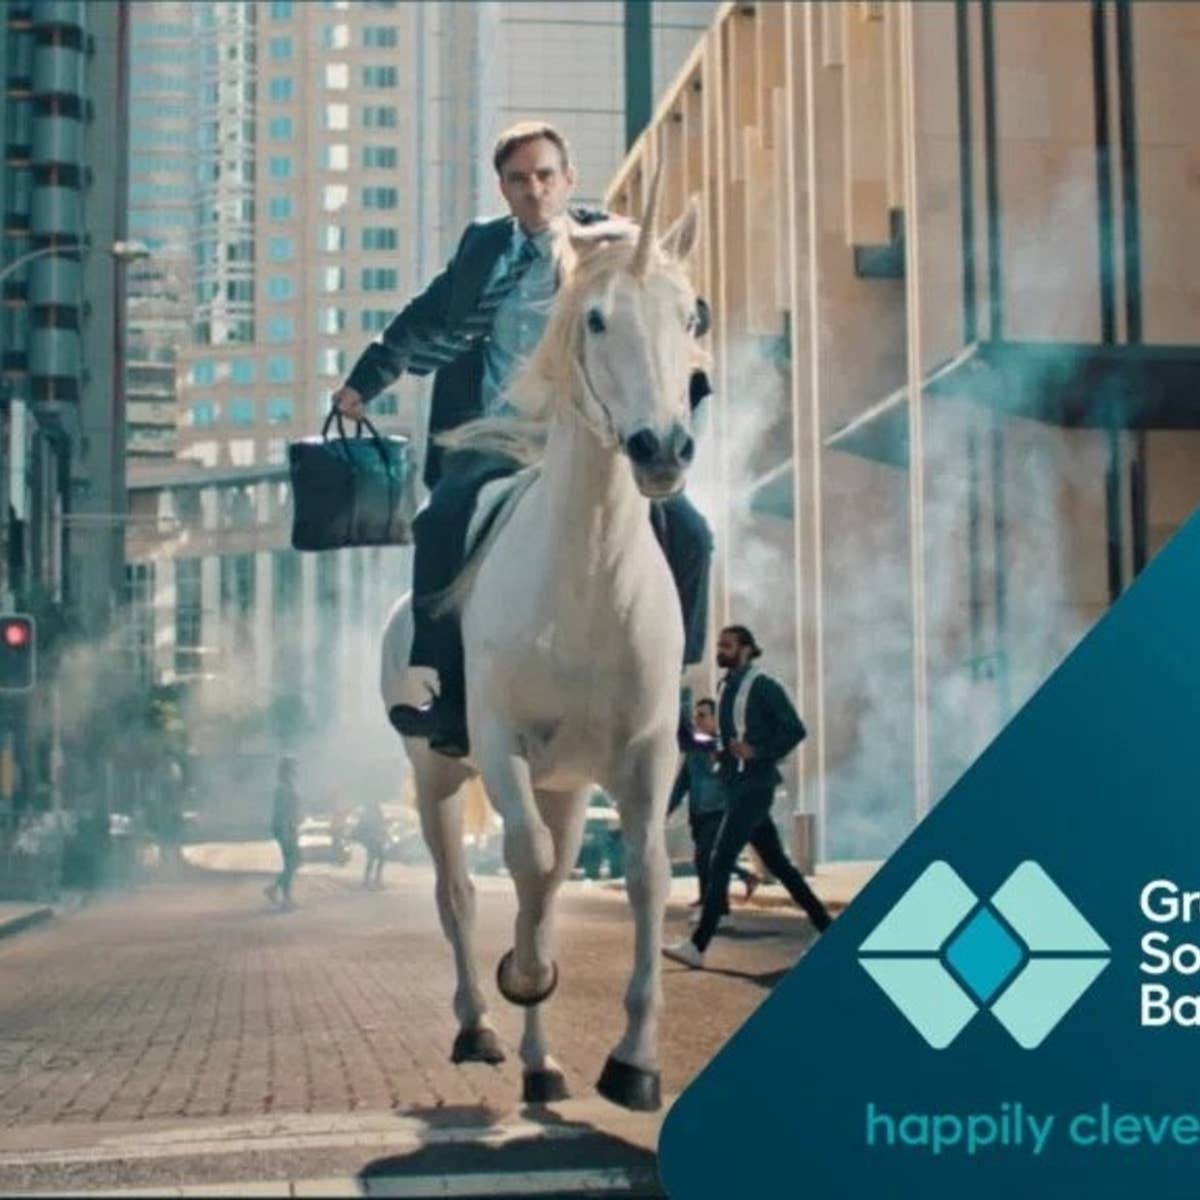 Great Southern Bank launches first campaign since rebrand from Credit Union Australia